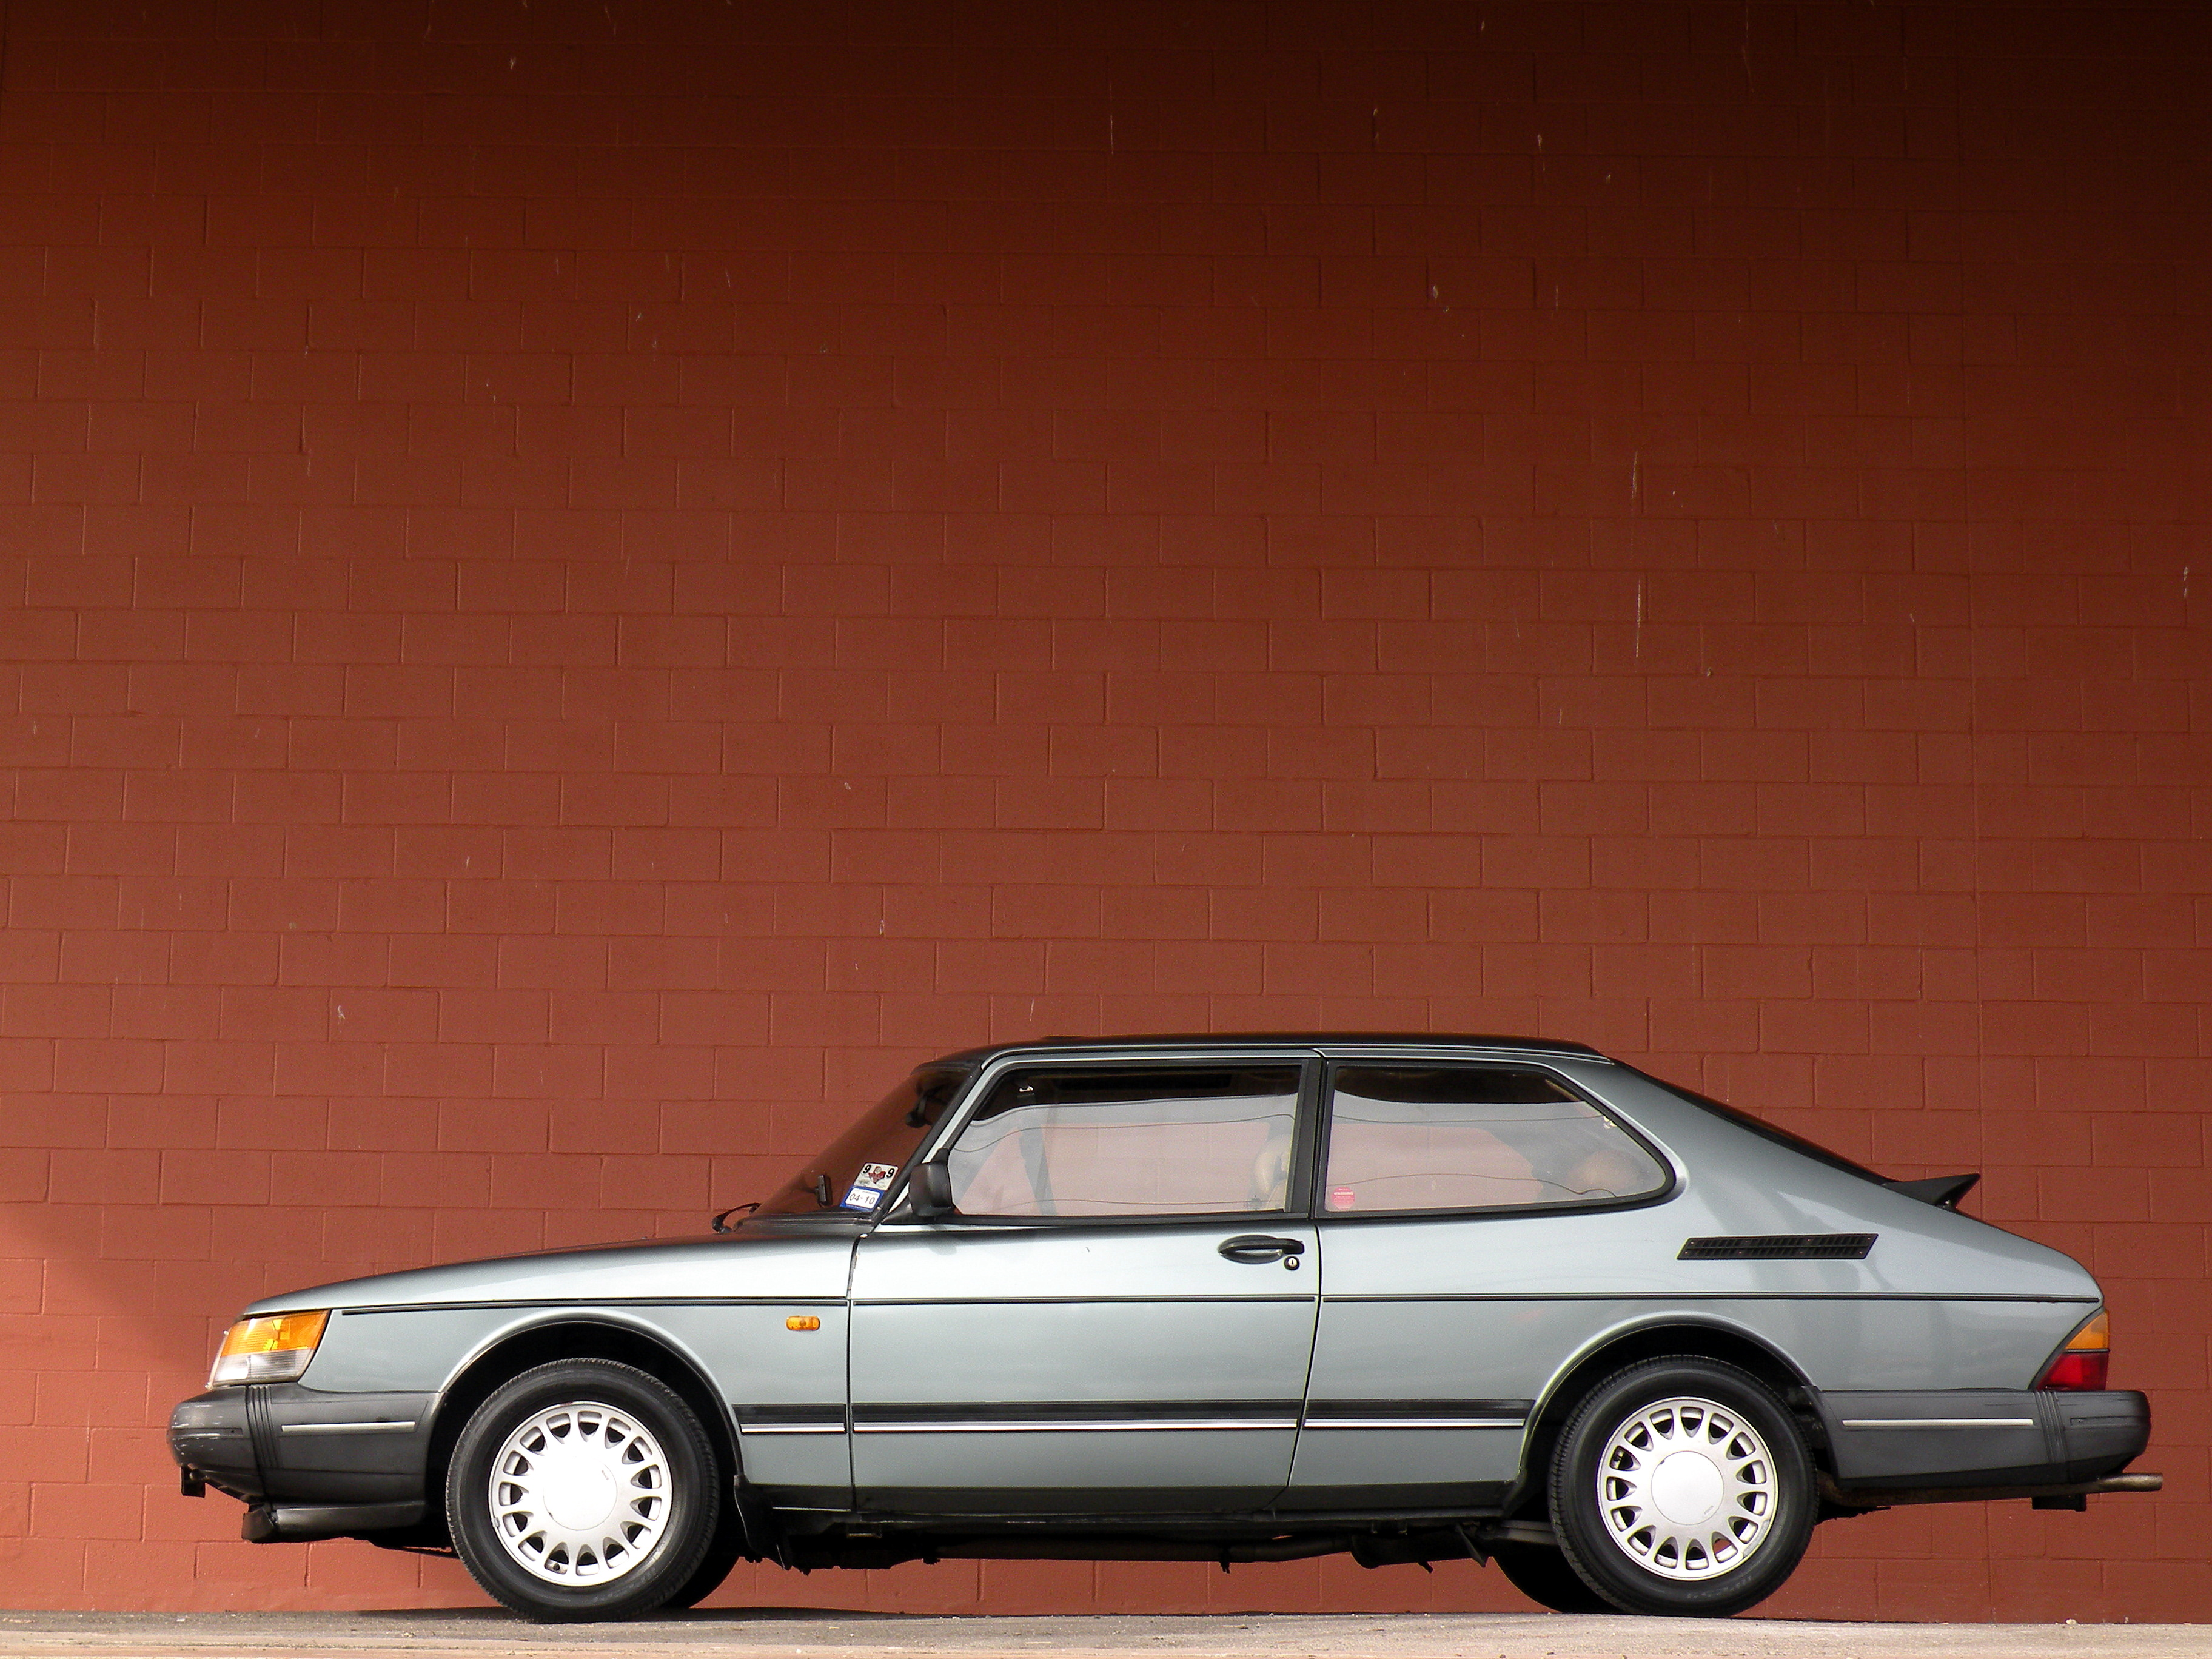 saab 900 wallpaper #12